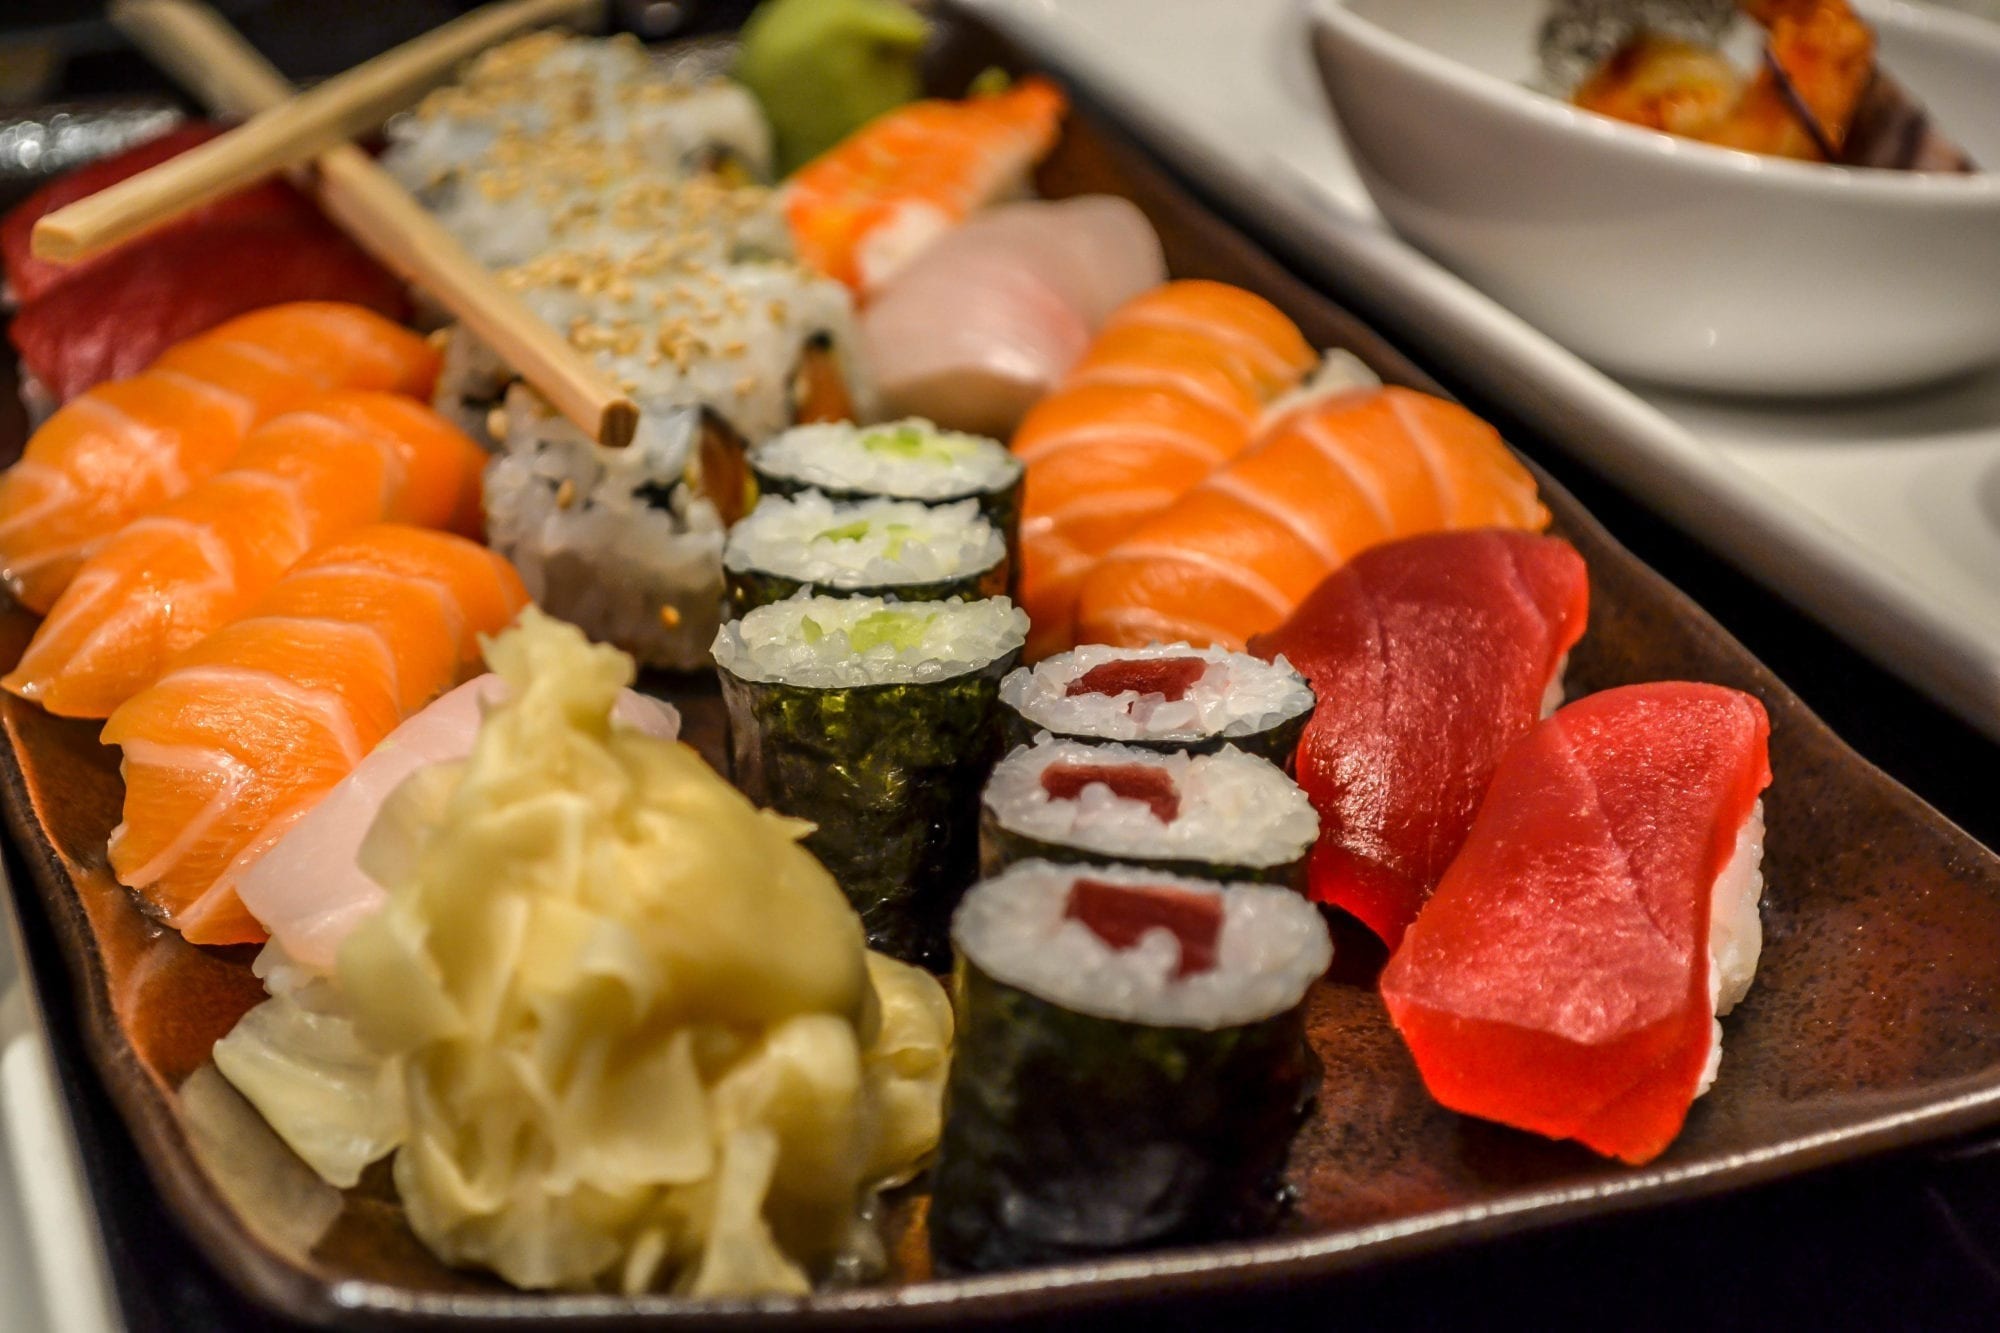 The Top 10 Places with the Best Sushi in Düsseldorf